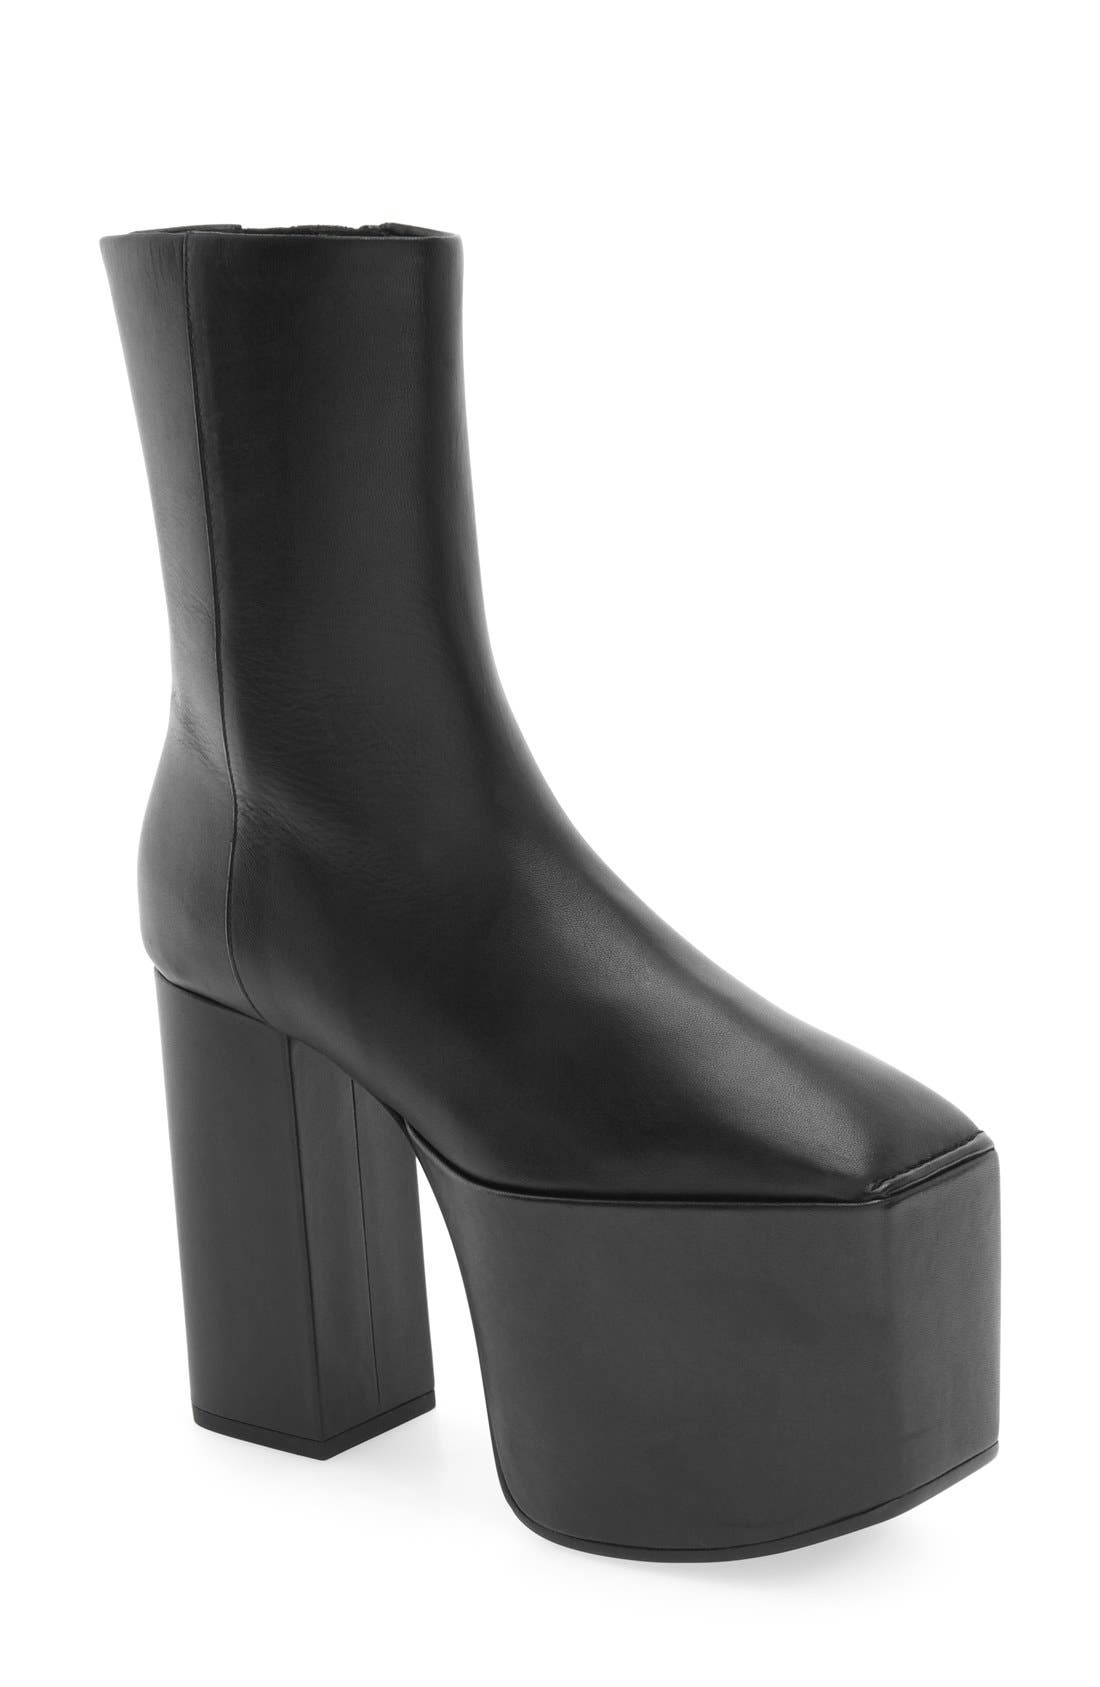 Alternate Image 1 Selected - Balenciaga Platform Bootie (Women)